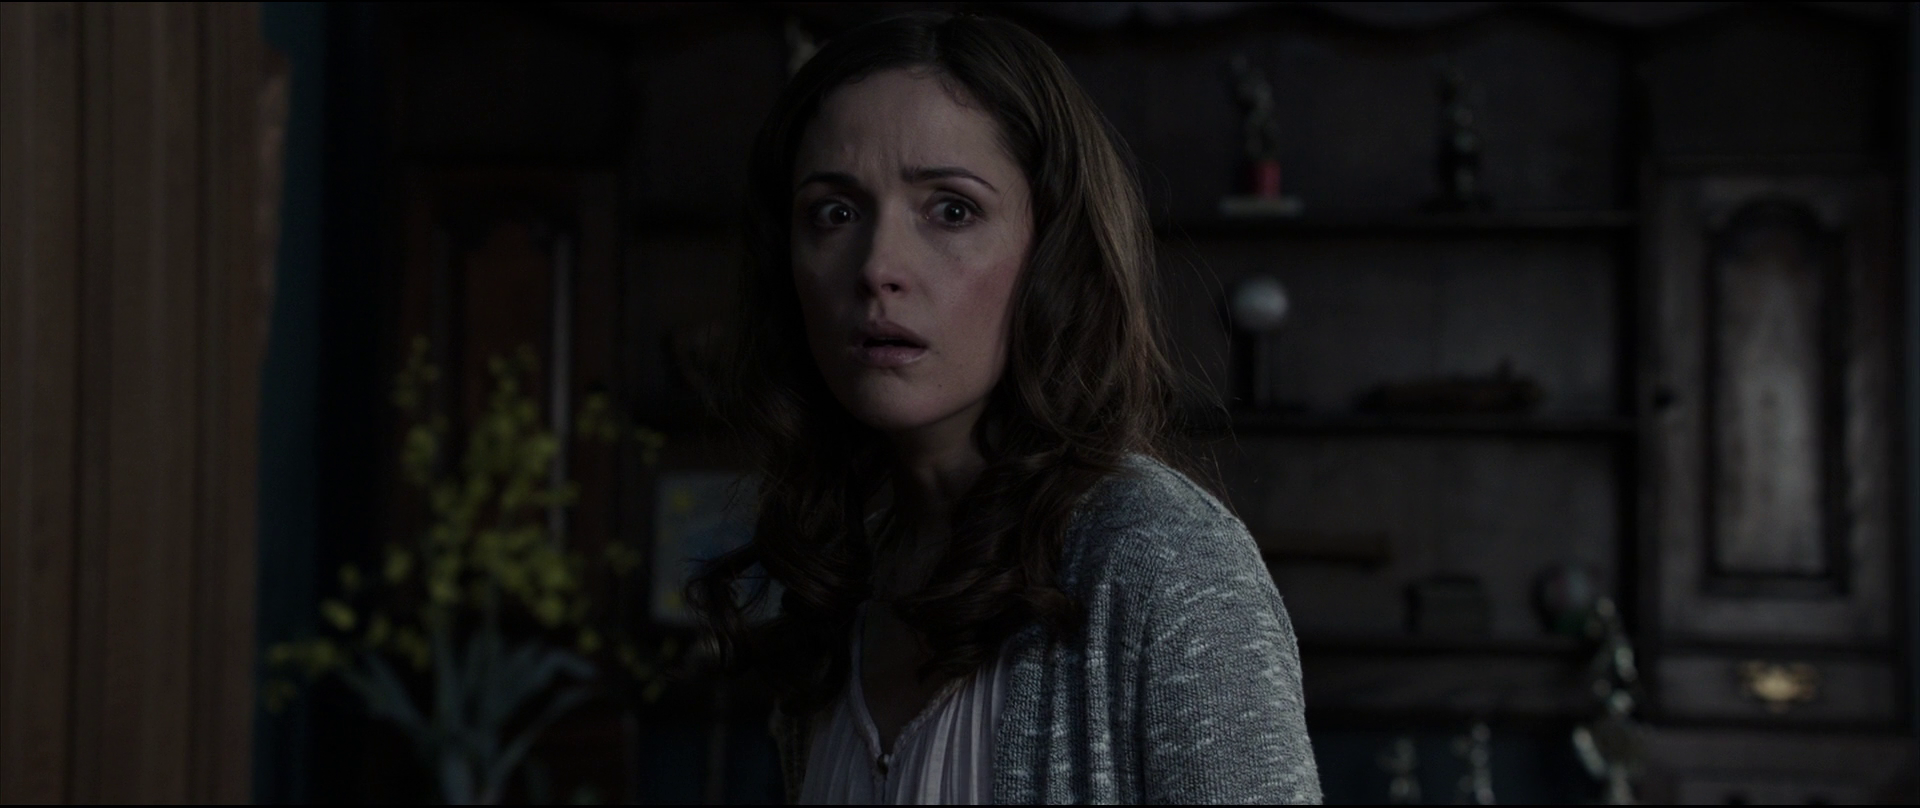 Download Insidious Chapter 2 (2013) 1080p BluRay x264-SPARKS